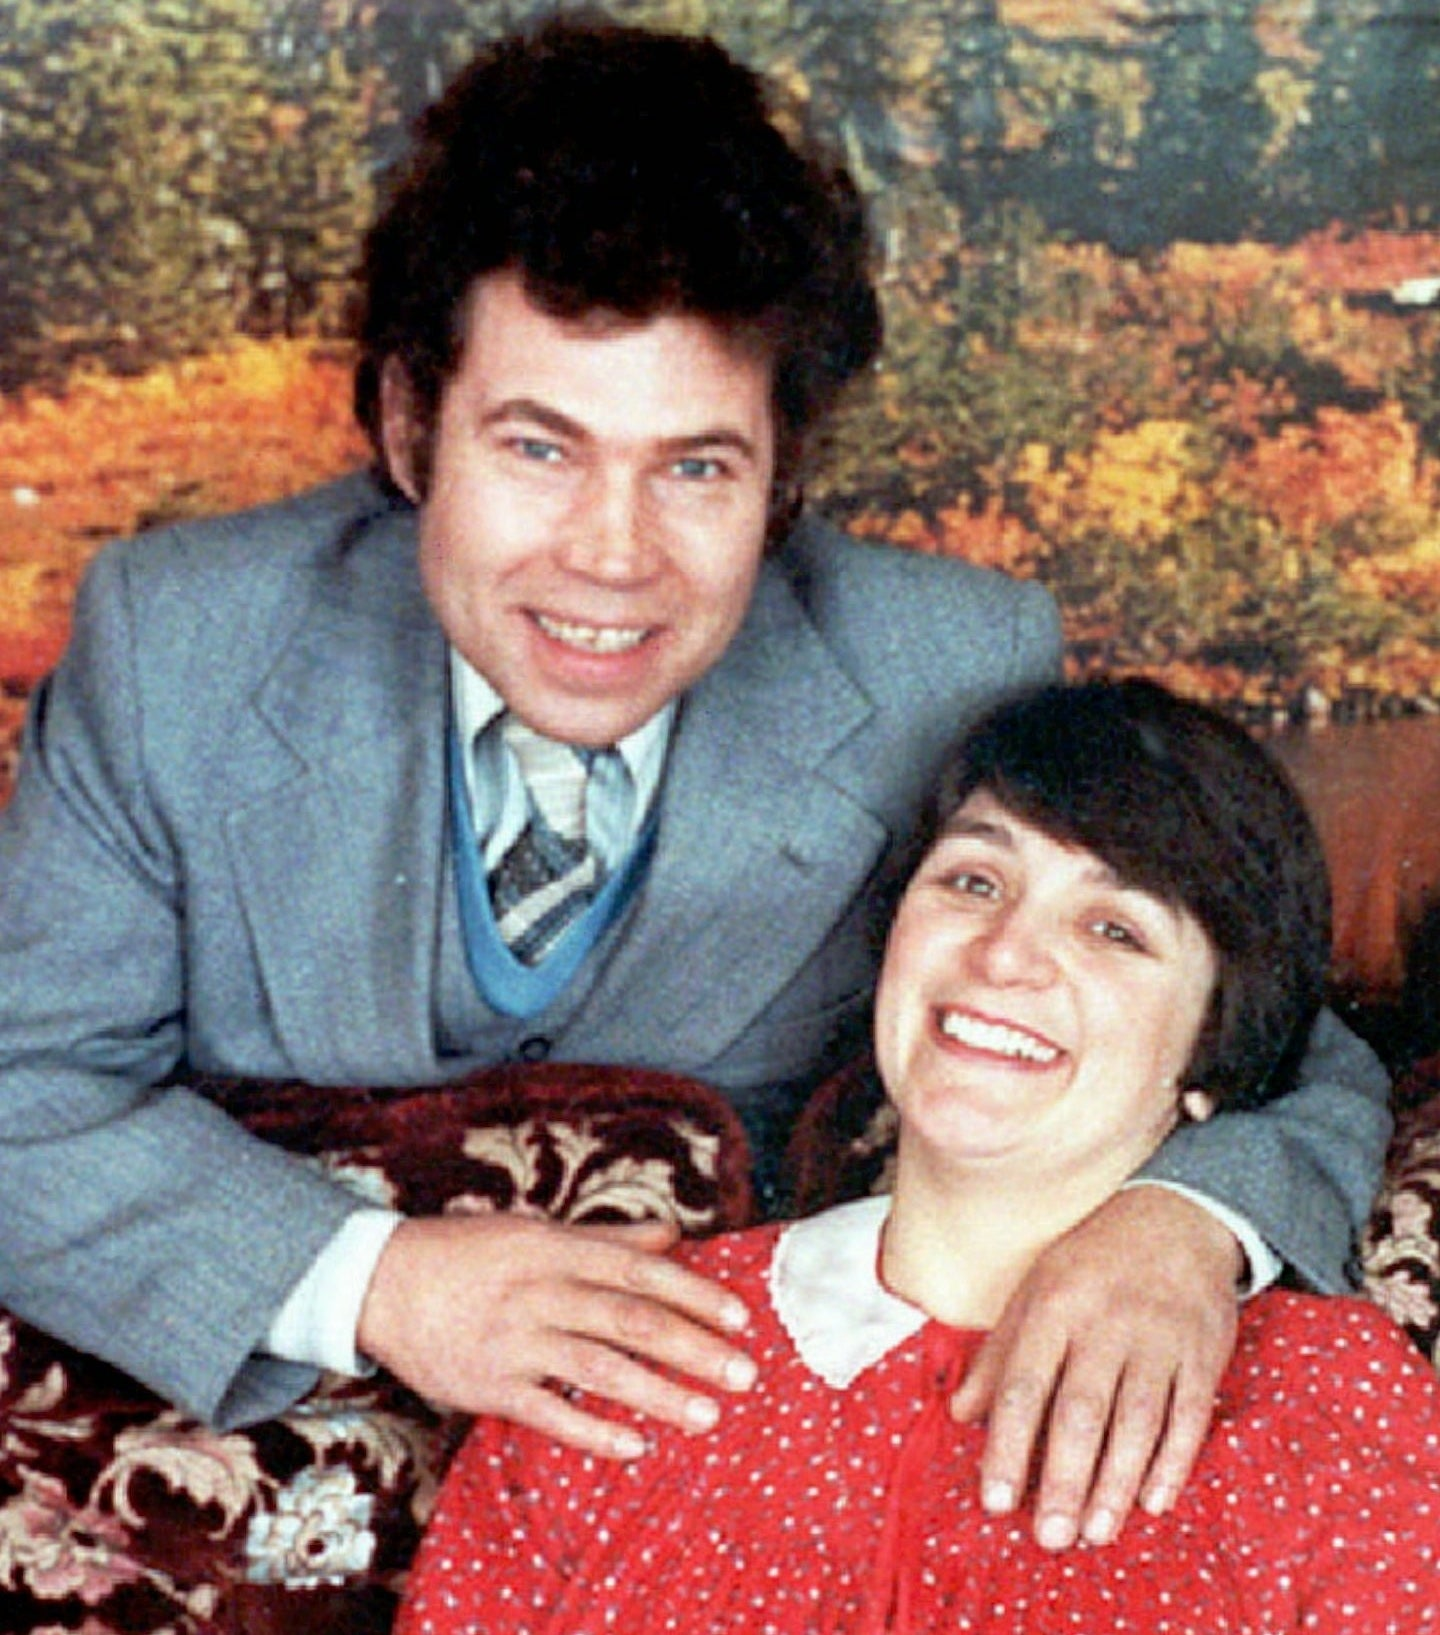 Rosemary and Fred West posing for a photo